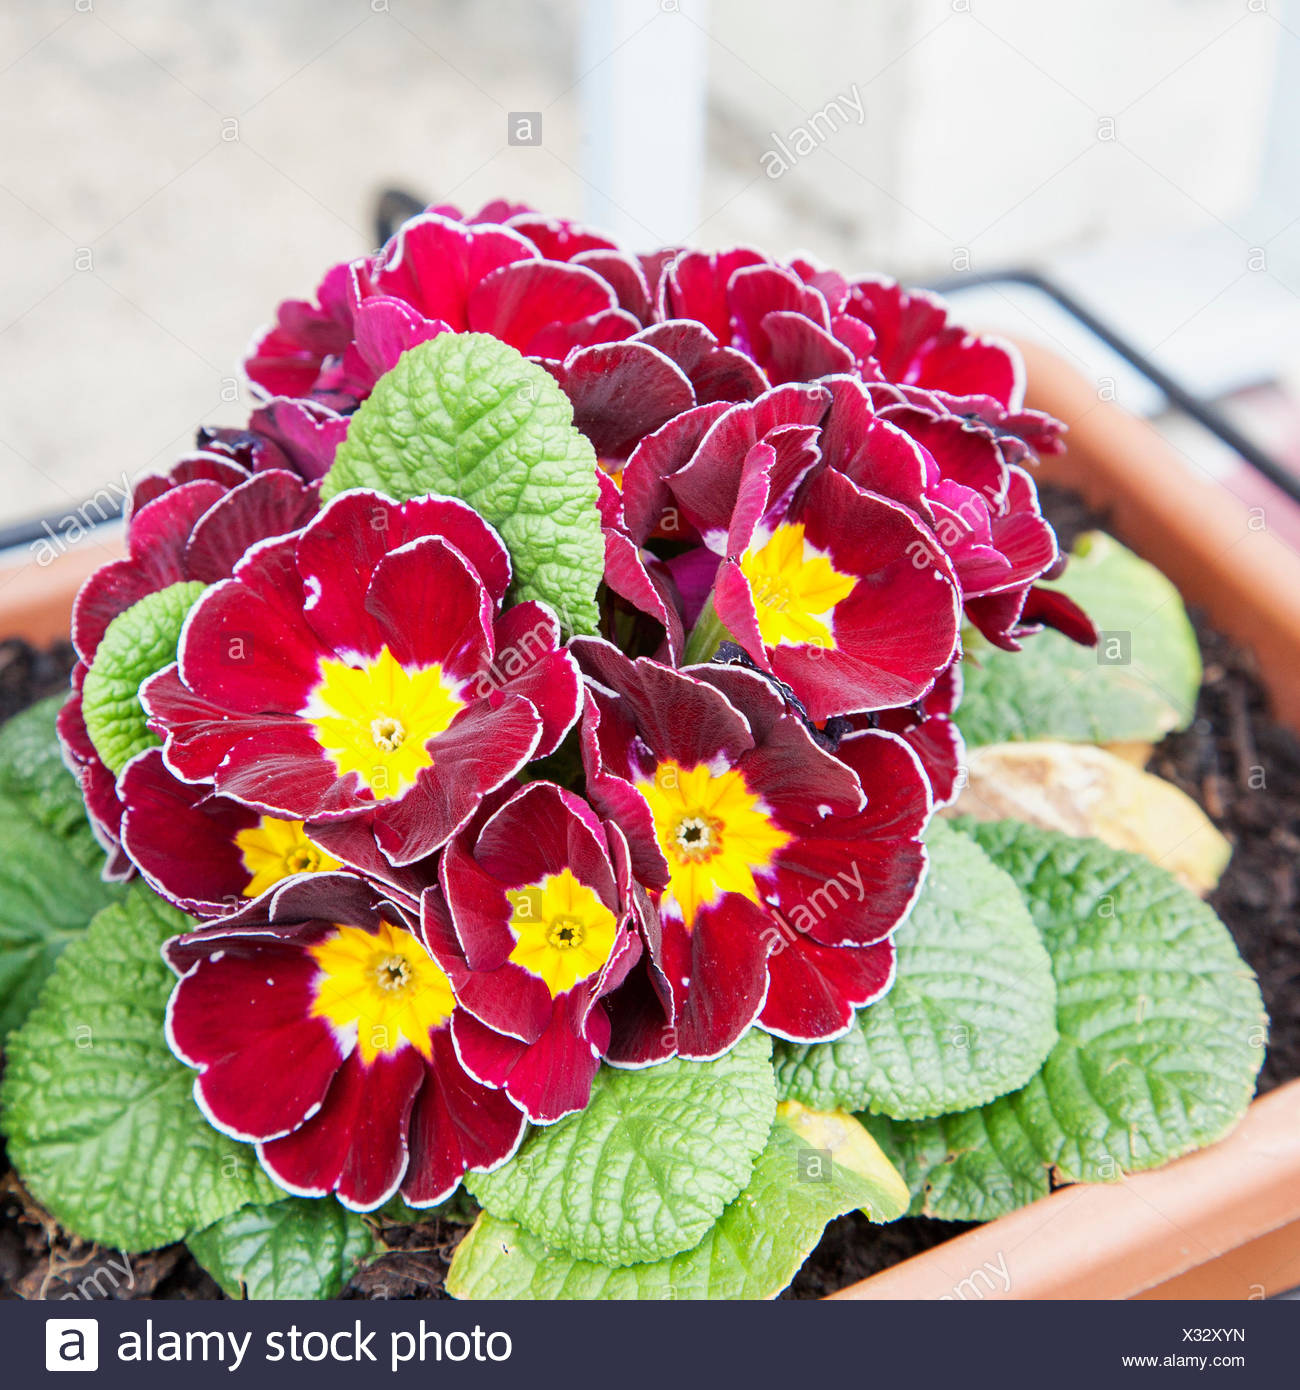 Red violets in bunch Stock Photo - Alamy